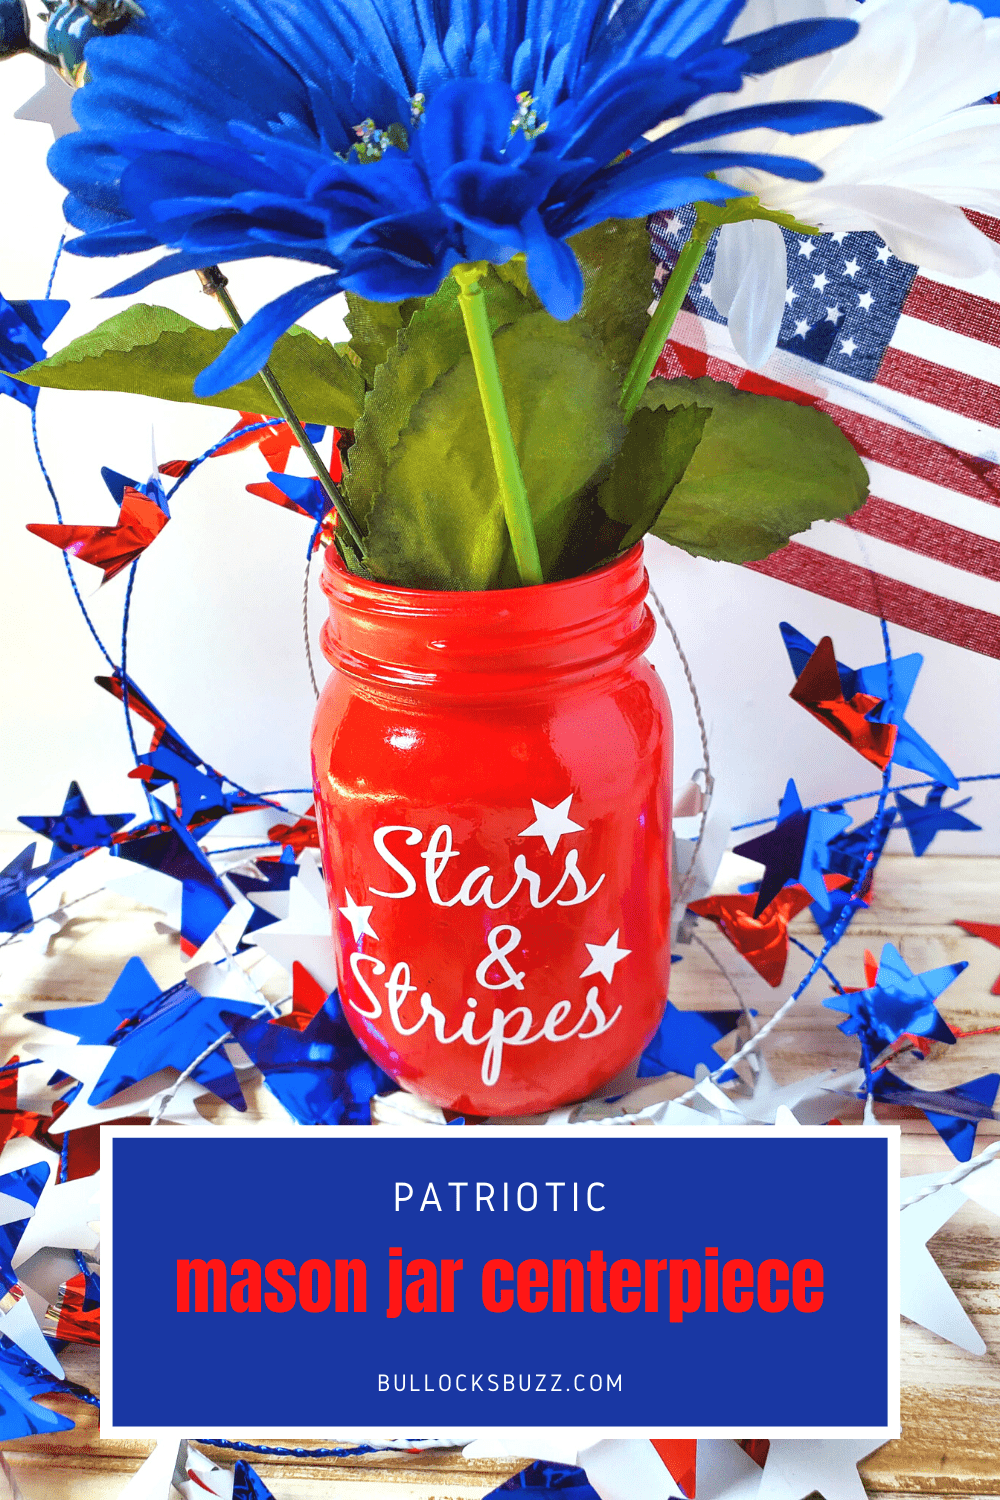 This easy DIY Patriotic Mason Jar Centerpiece gives you a fun and festive decoration you can put on your table, around your deck, or in your windows. Your area will be transformed by this simple mason jar craft! #patrioticcrafts #crafts #masonjarcrafts